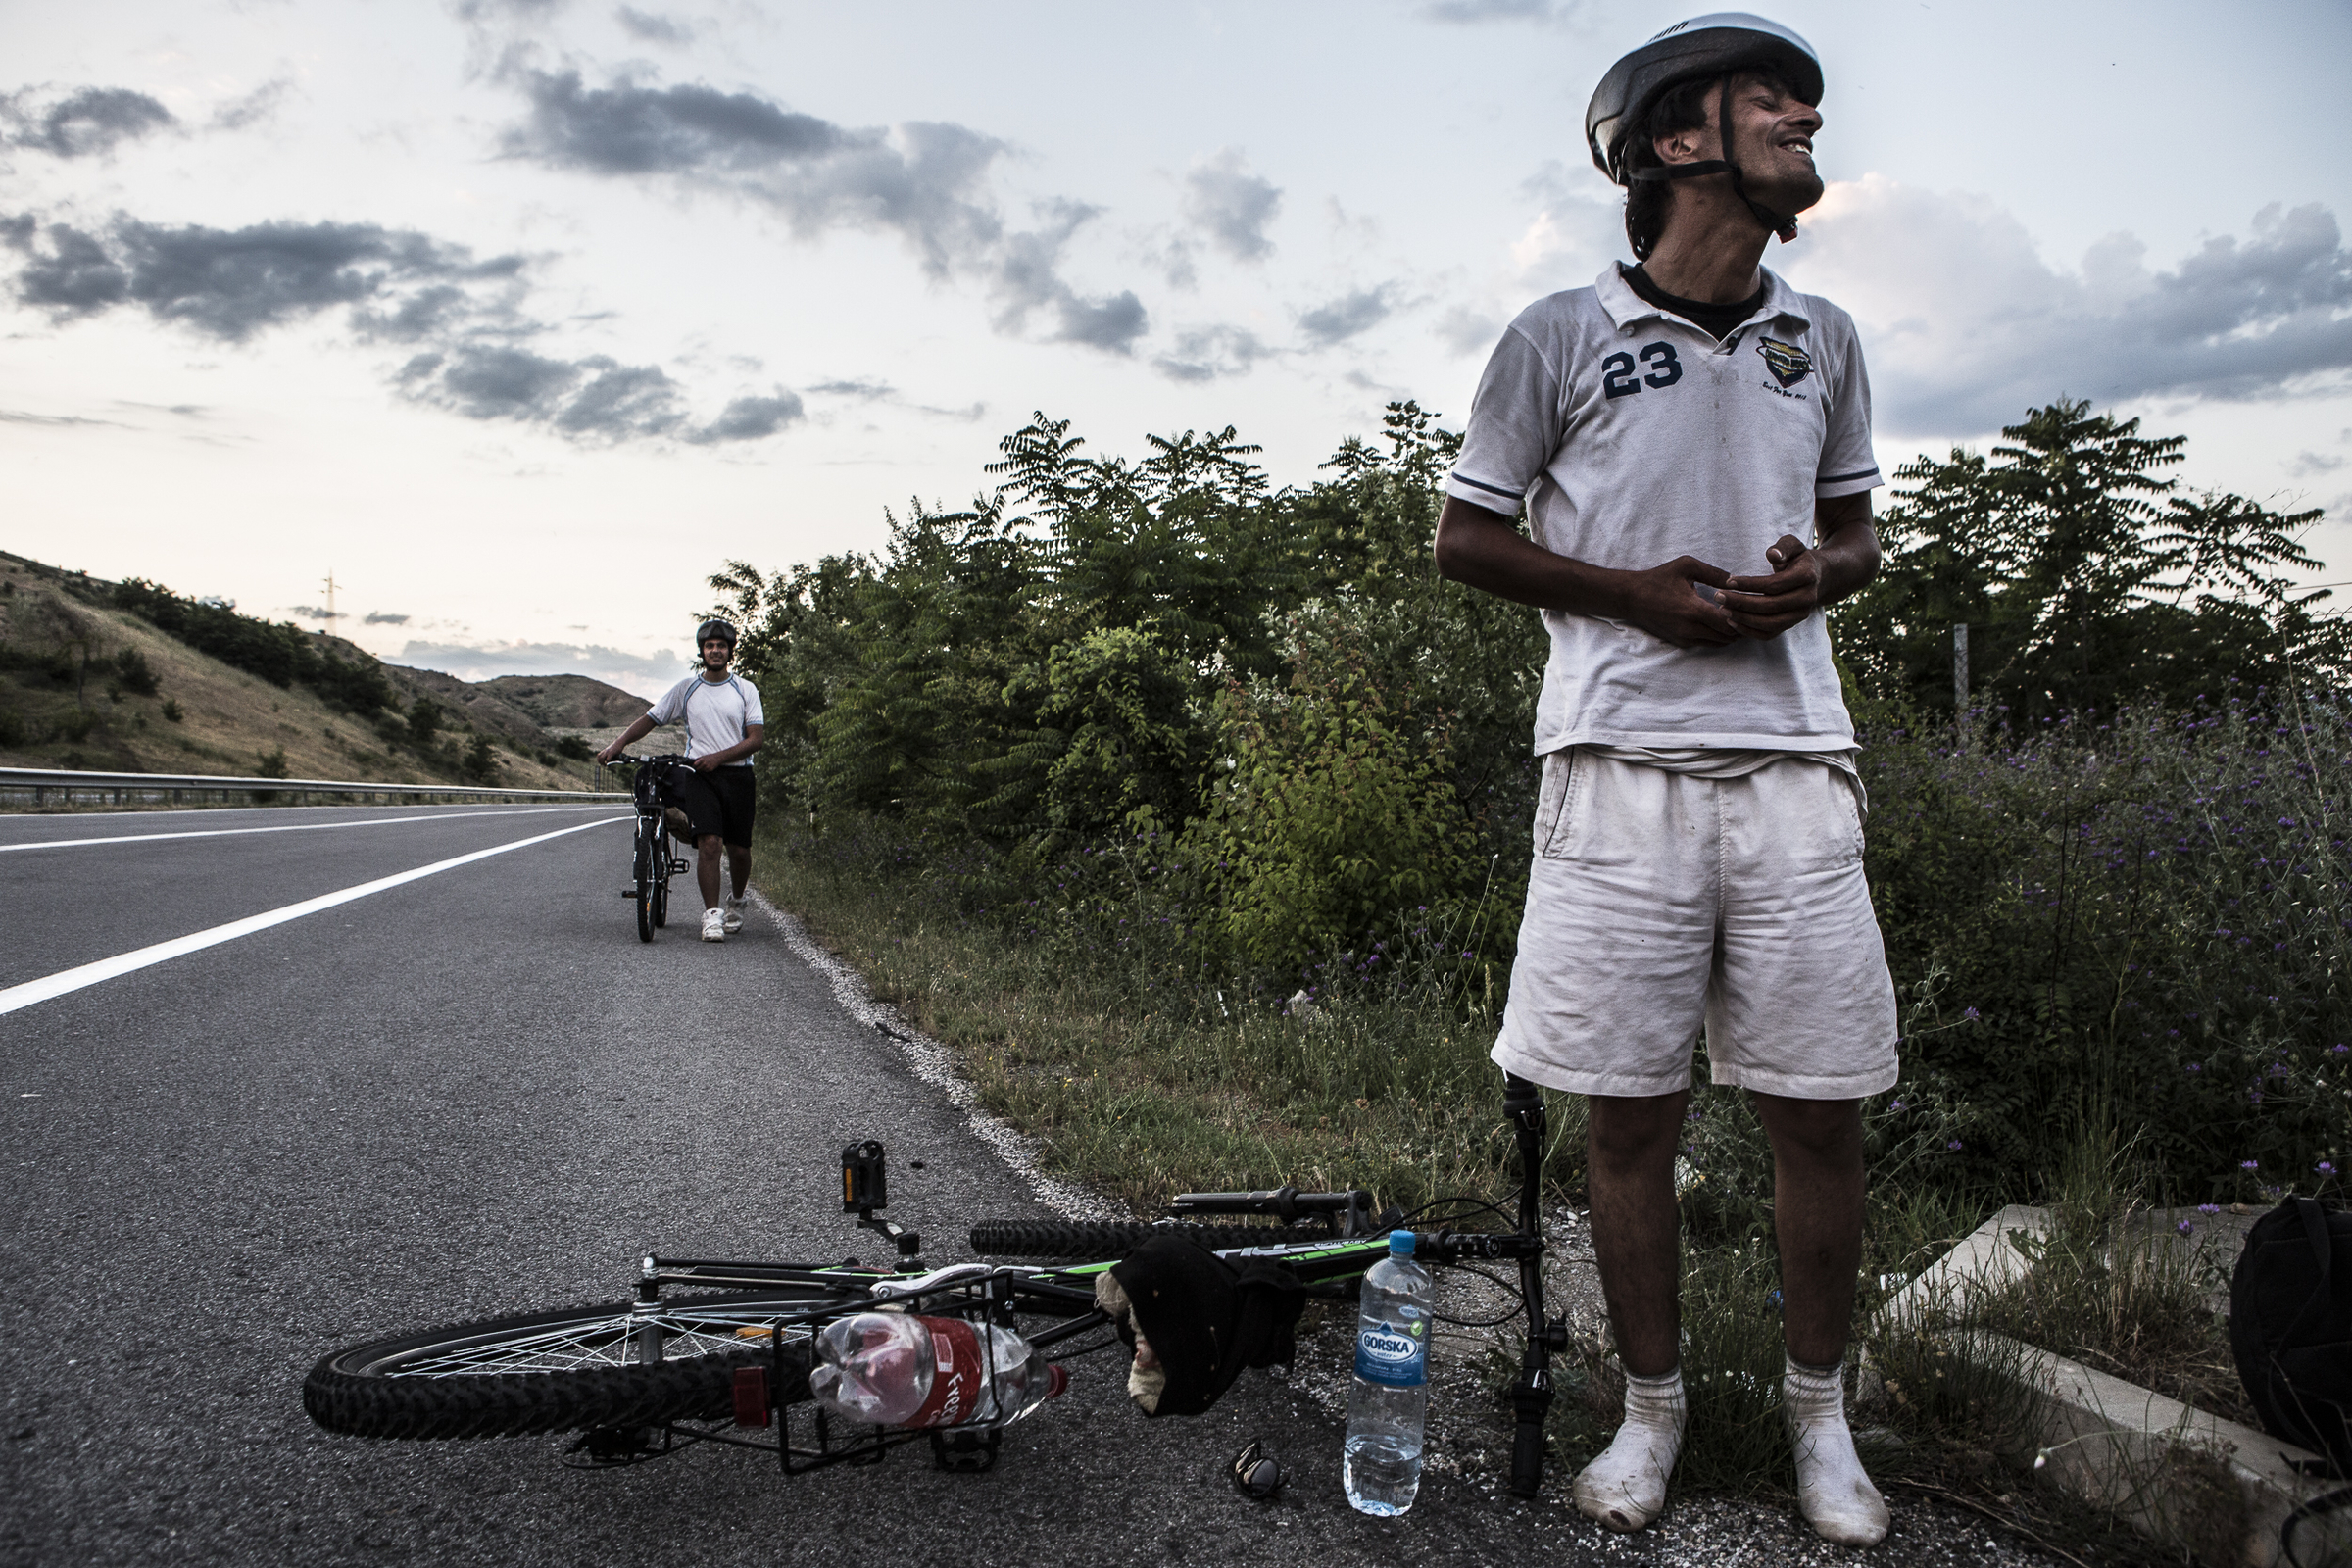 Ali and his friend are among an increasing number of Syrians who have taken to riding bikes as a faster and safer way of crossing Macedonia.